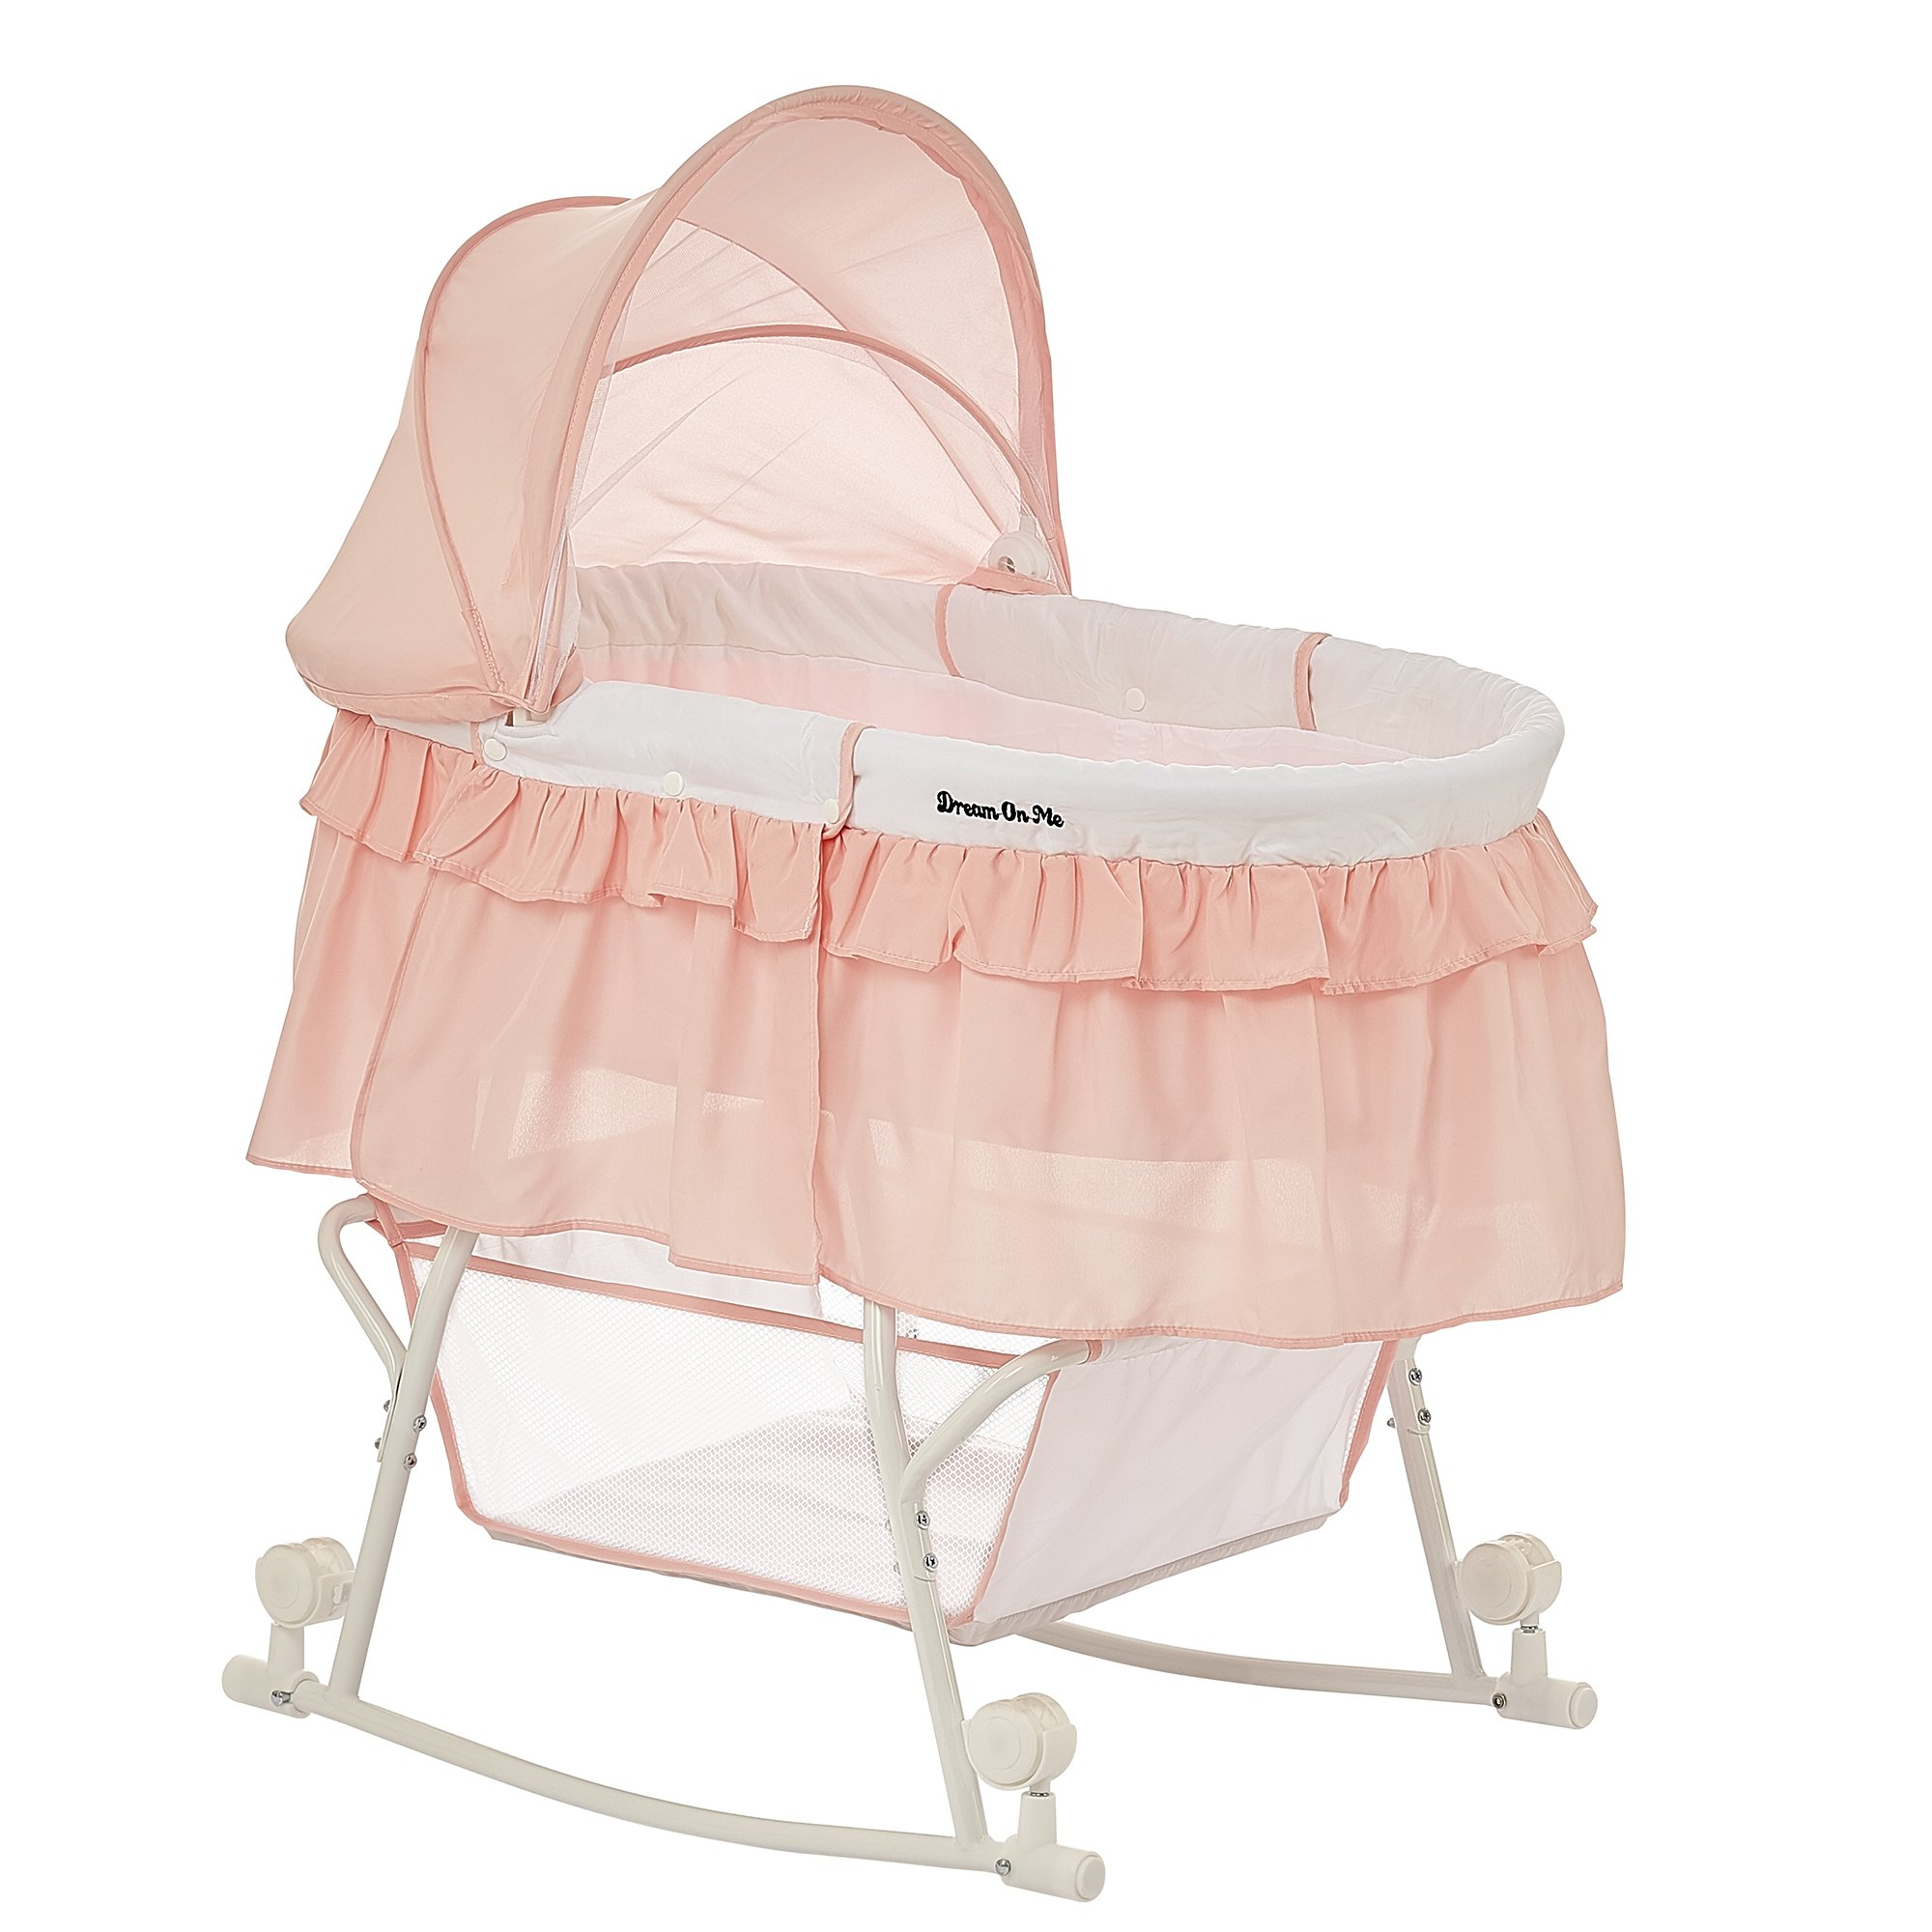 Dream on Me Lacy Portable 2-in-1 Bassinet by Dream On Me